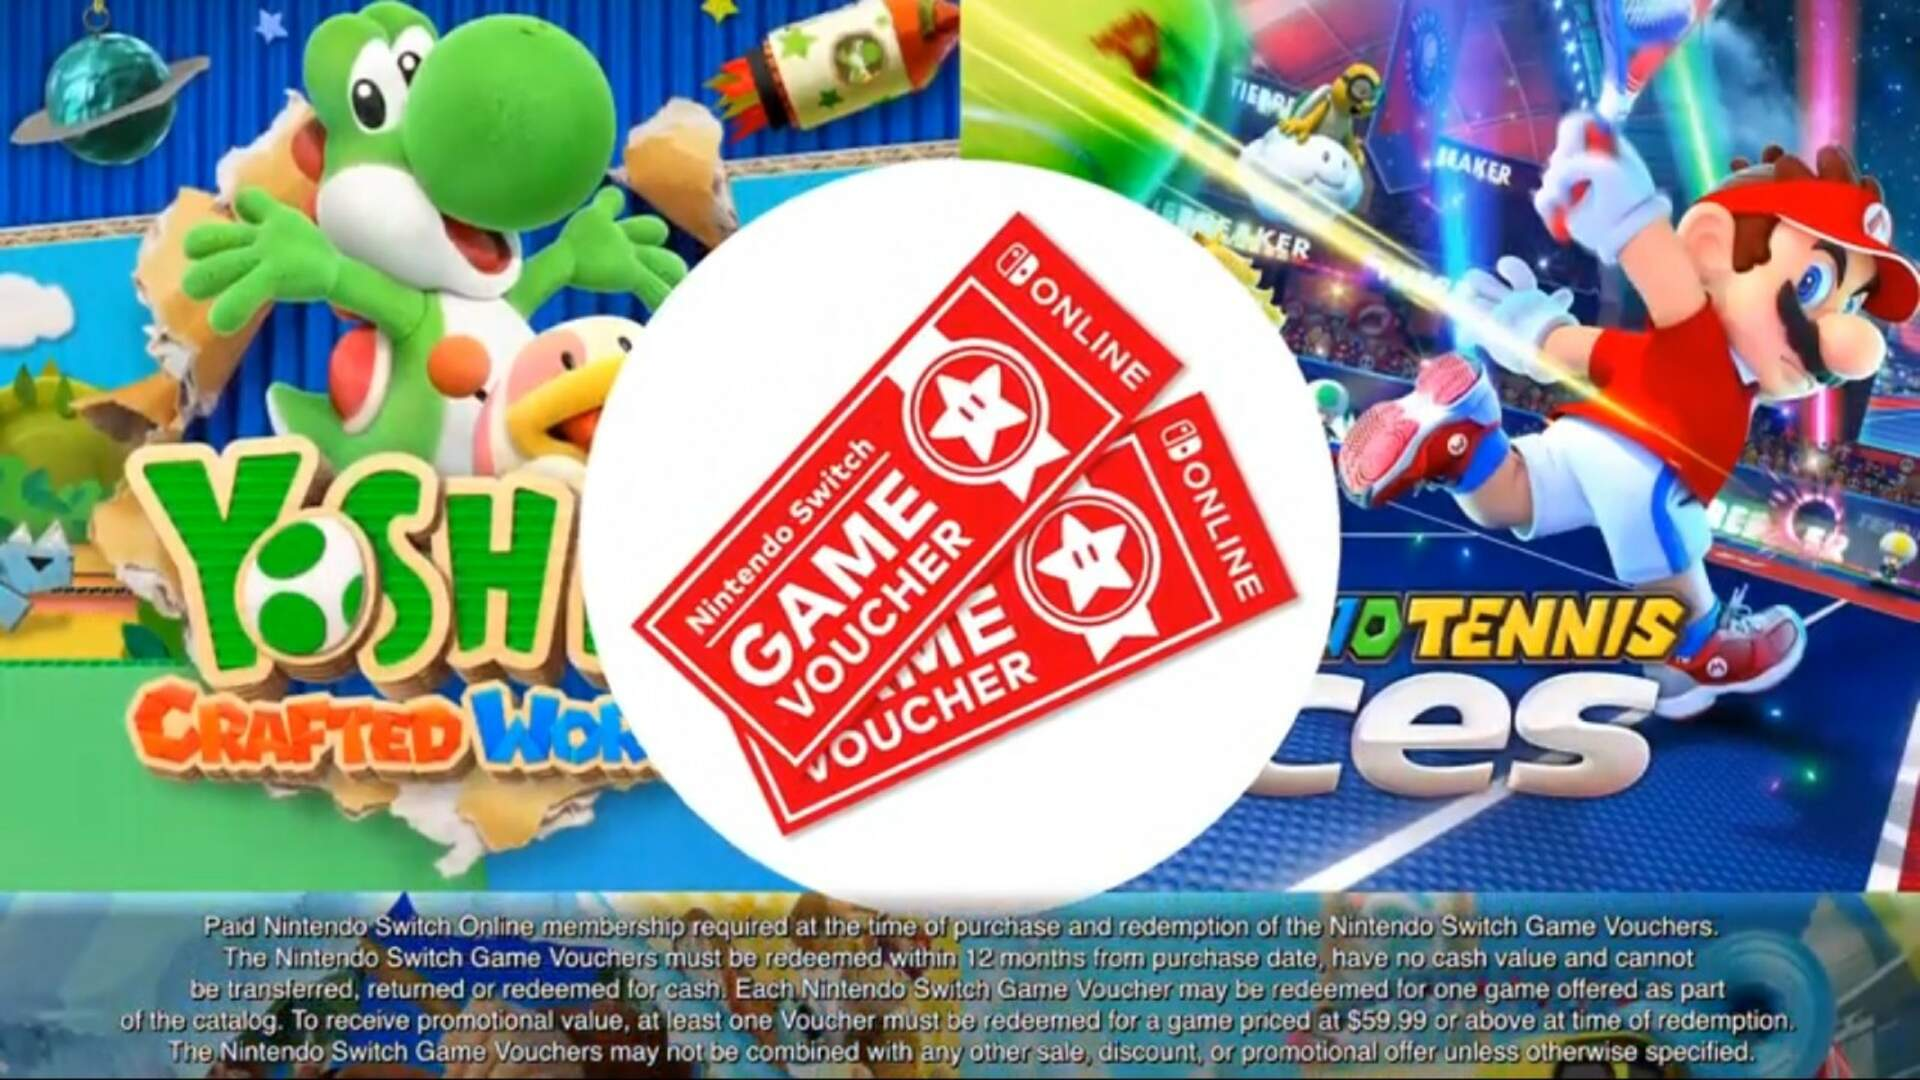 New Nintendo Switch Game Vouchers Offer Switch Online Members Exclusive Discounts on Games Including Super Smash Bros. Ultimate